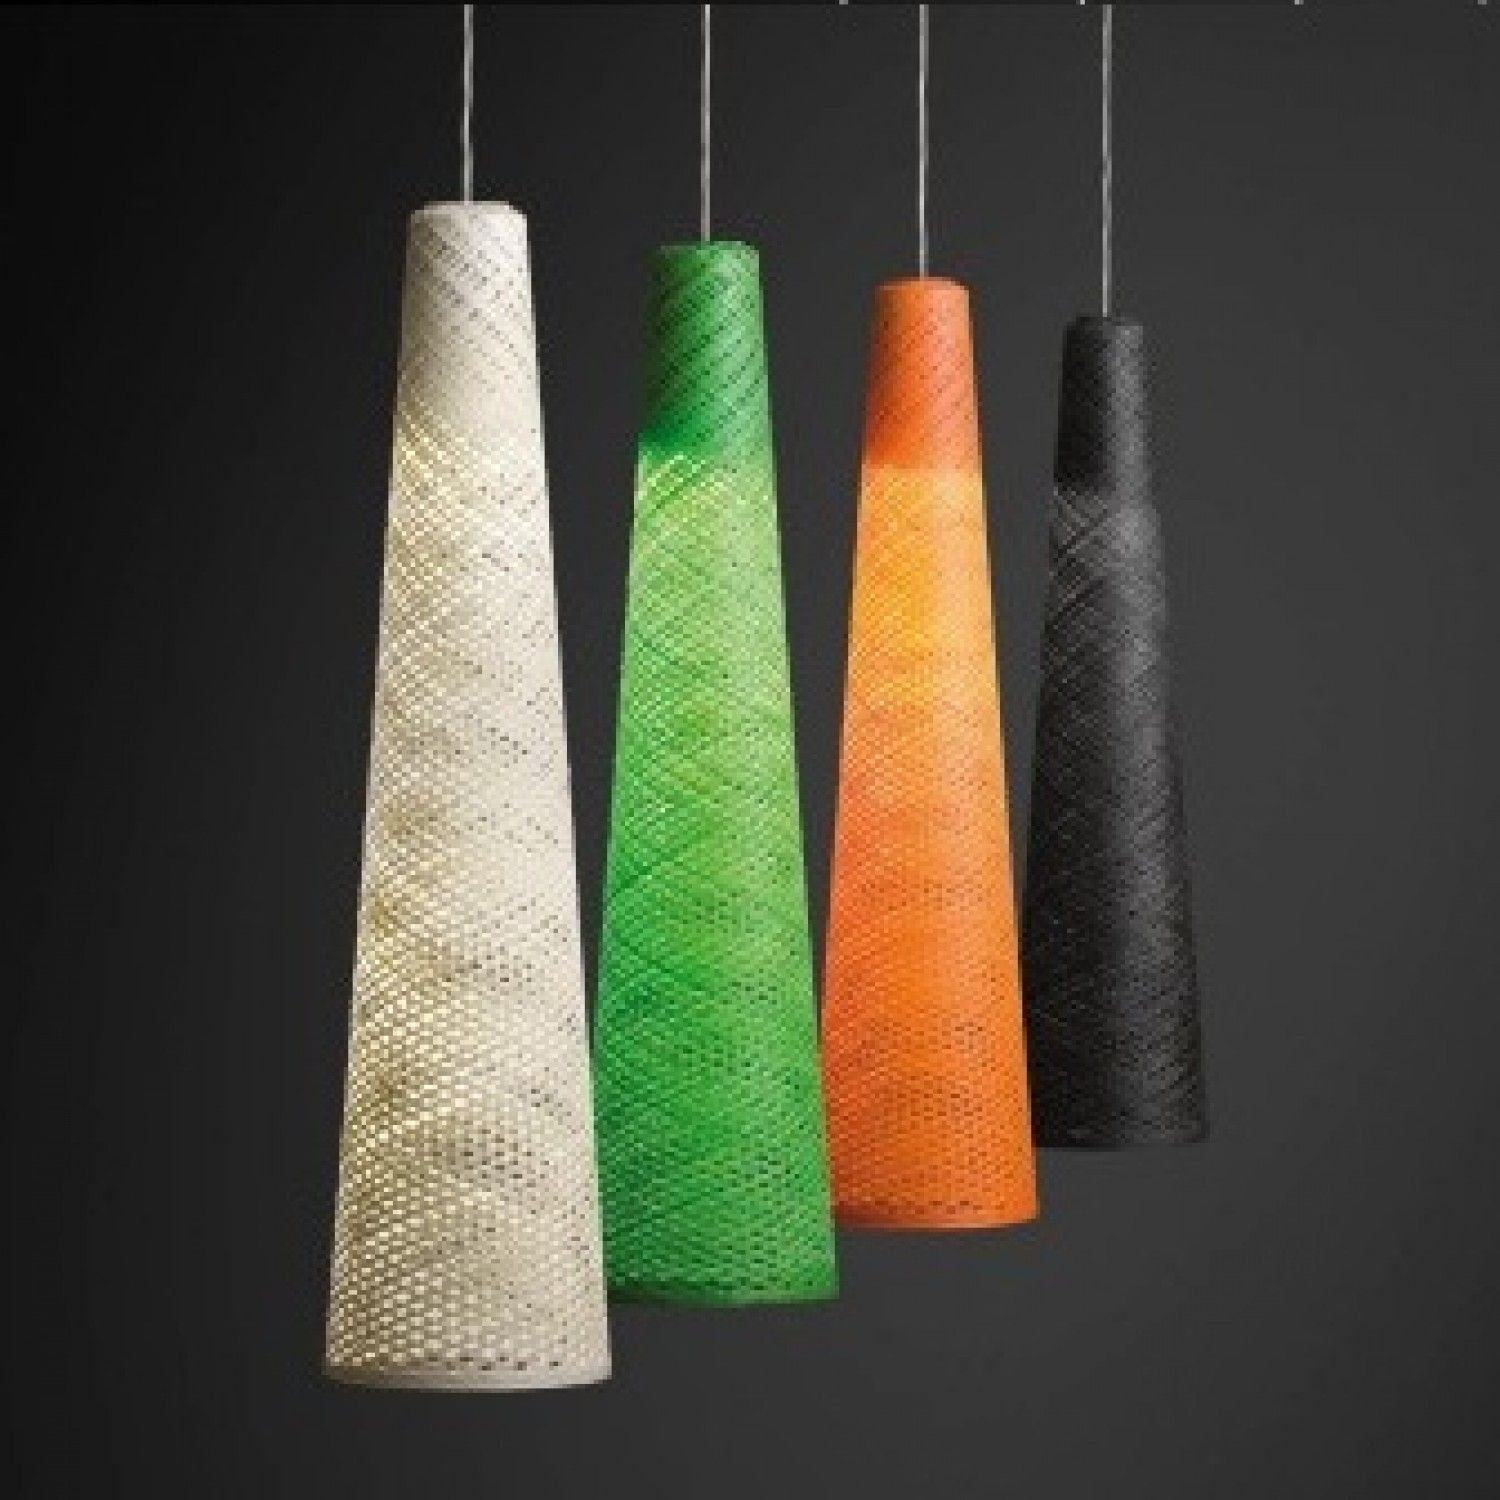 lampe design wind suspension 3 led vibia clairage